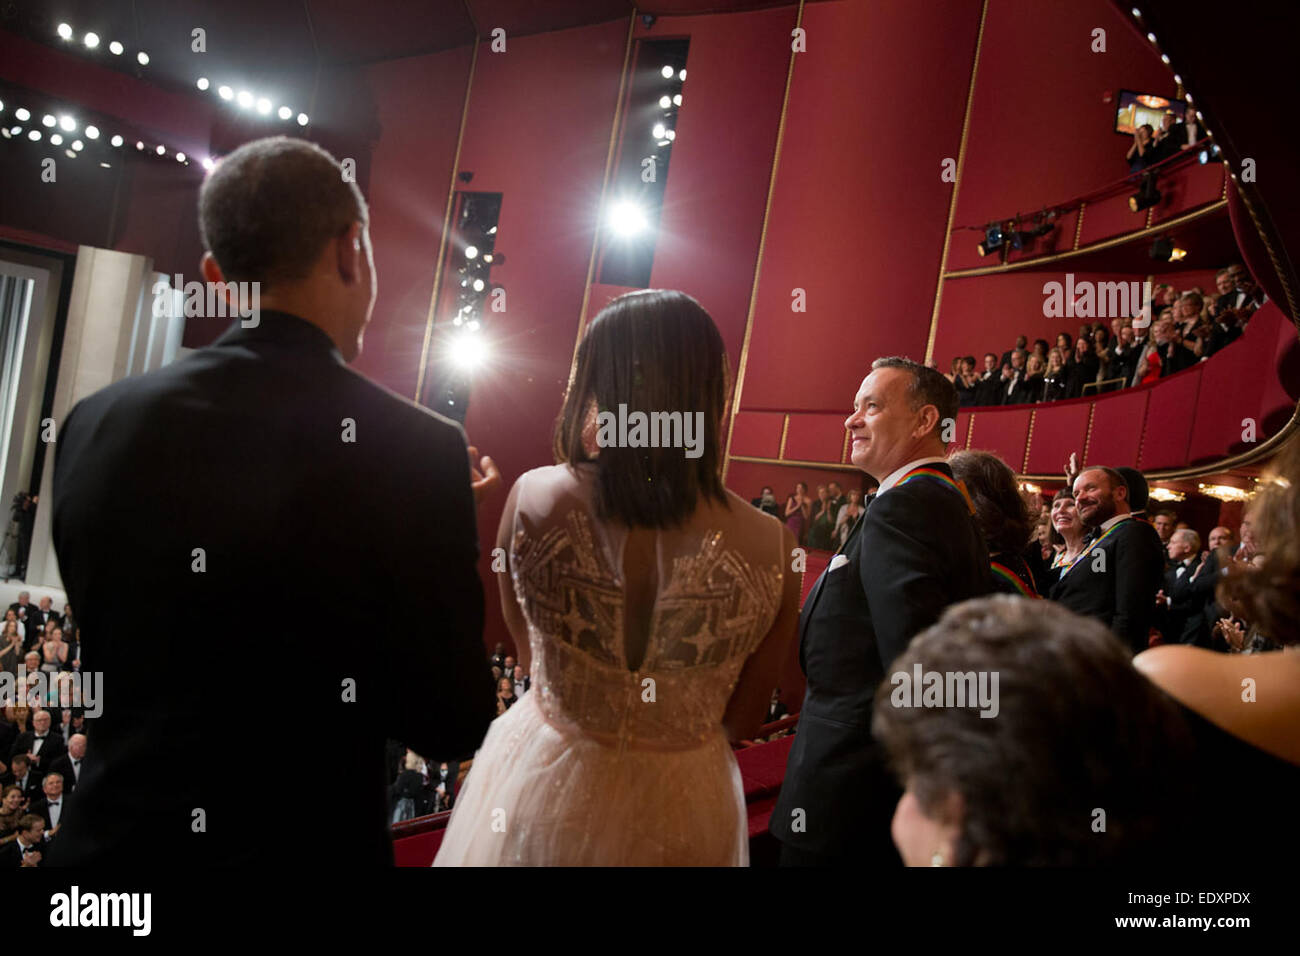 he President and First Lady applaud Tom Hanks, one of the honorees at the Kennedy Center Honors - Stock Image